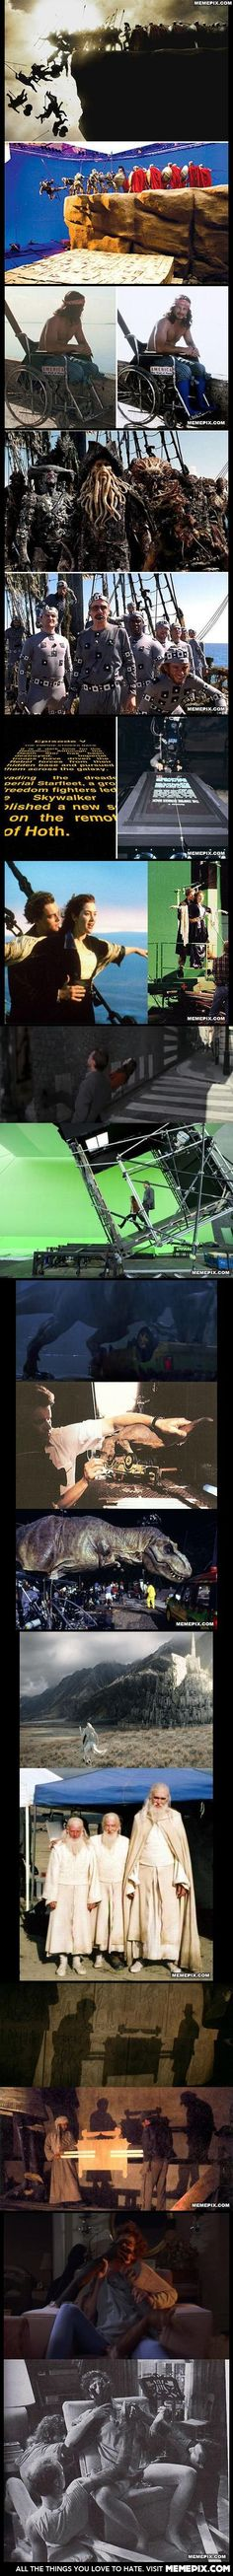 Special Effects In Classic Movie Scenes. Vfx history, the makjng of, cinemagic news, behind the scenes, visual effects breakdowns, makeup and costume art, reels and film making